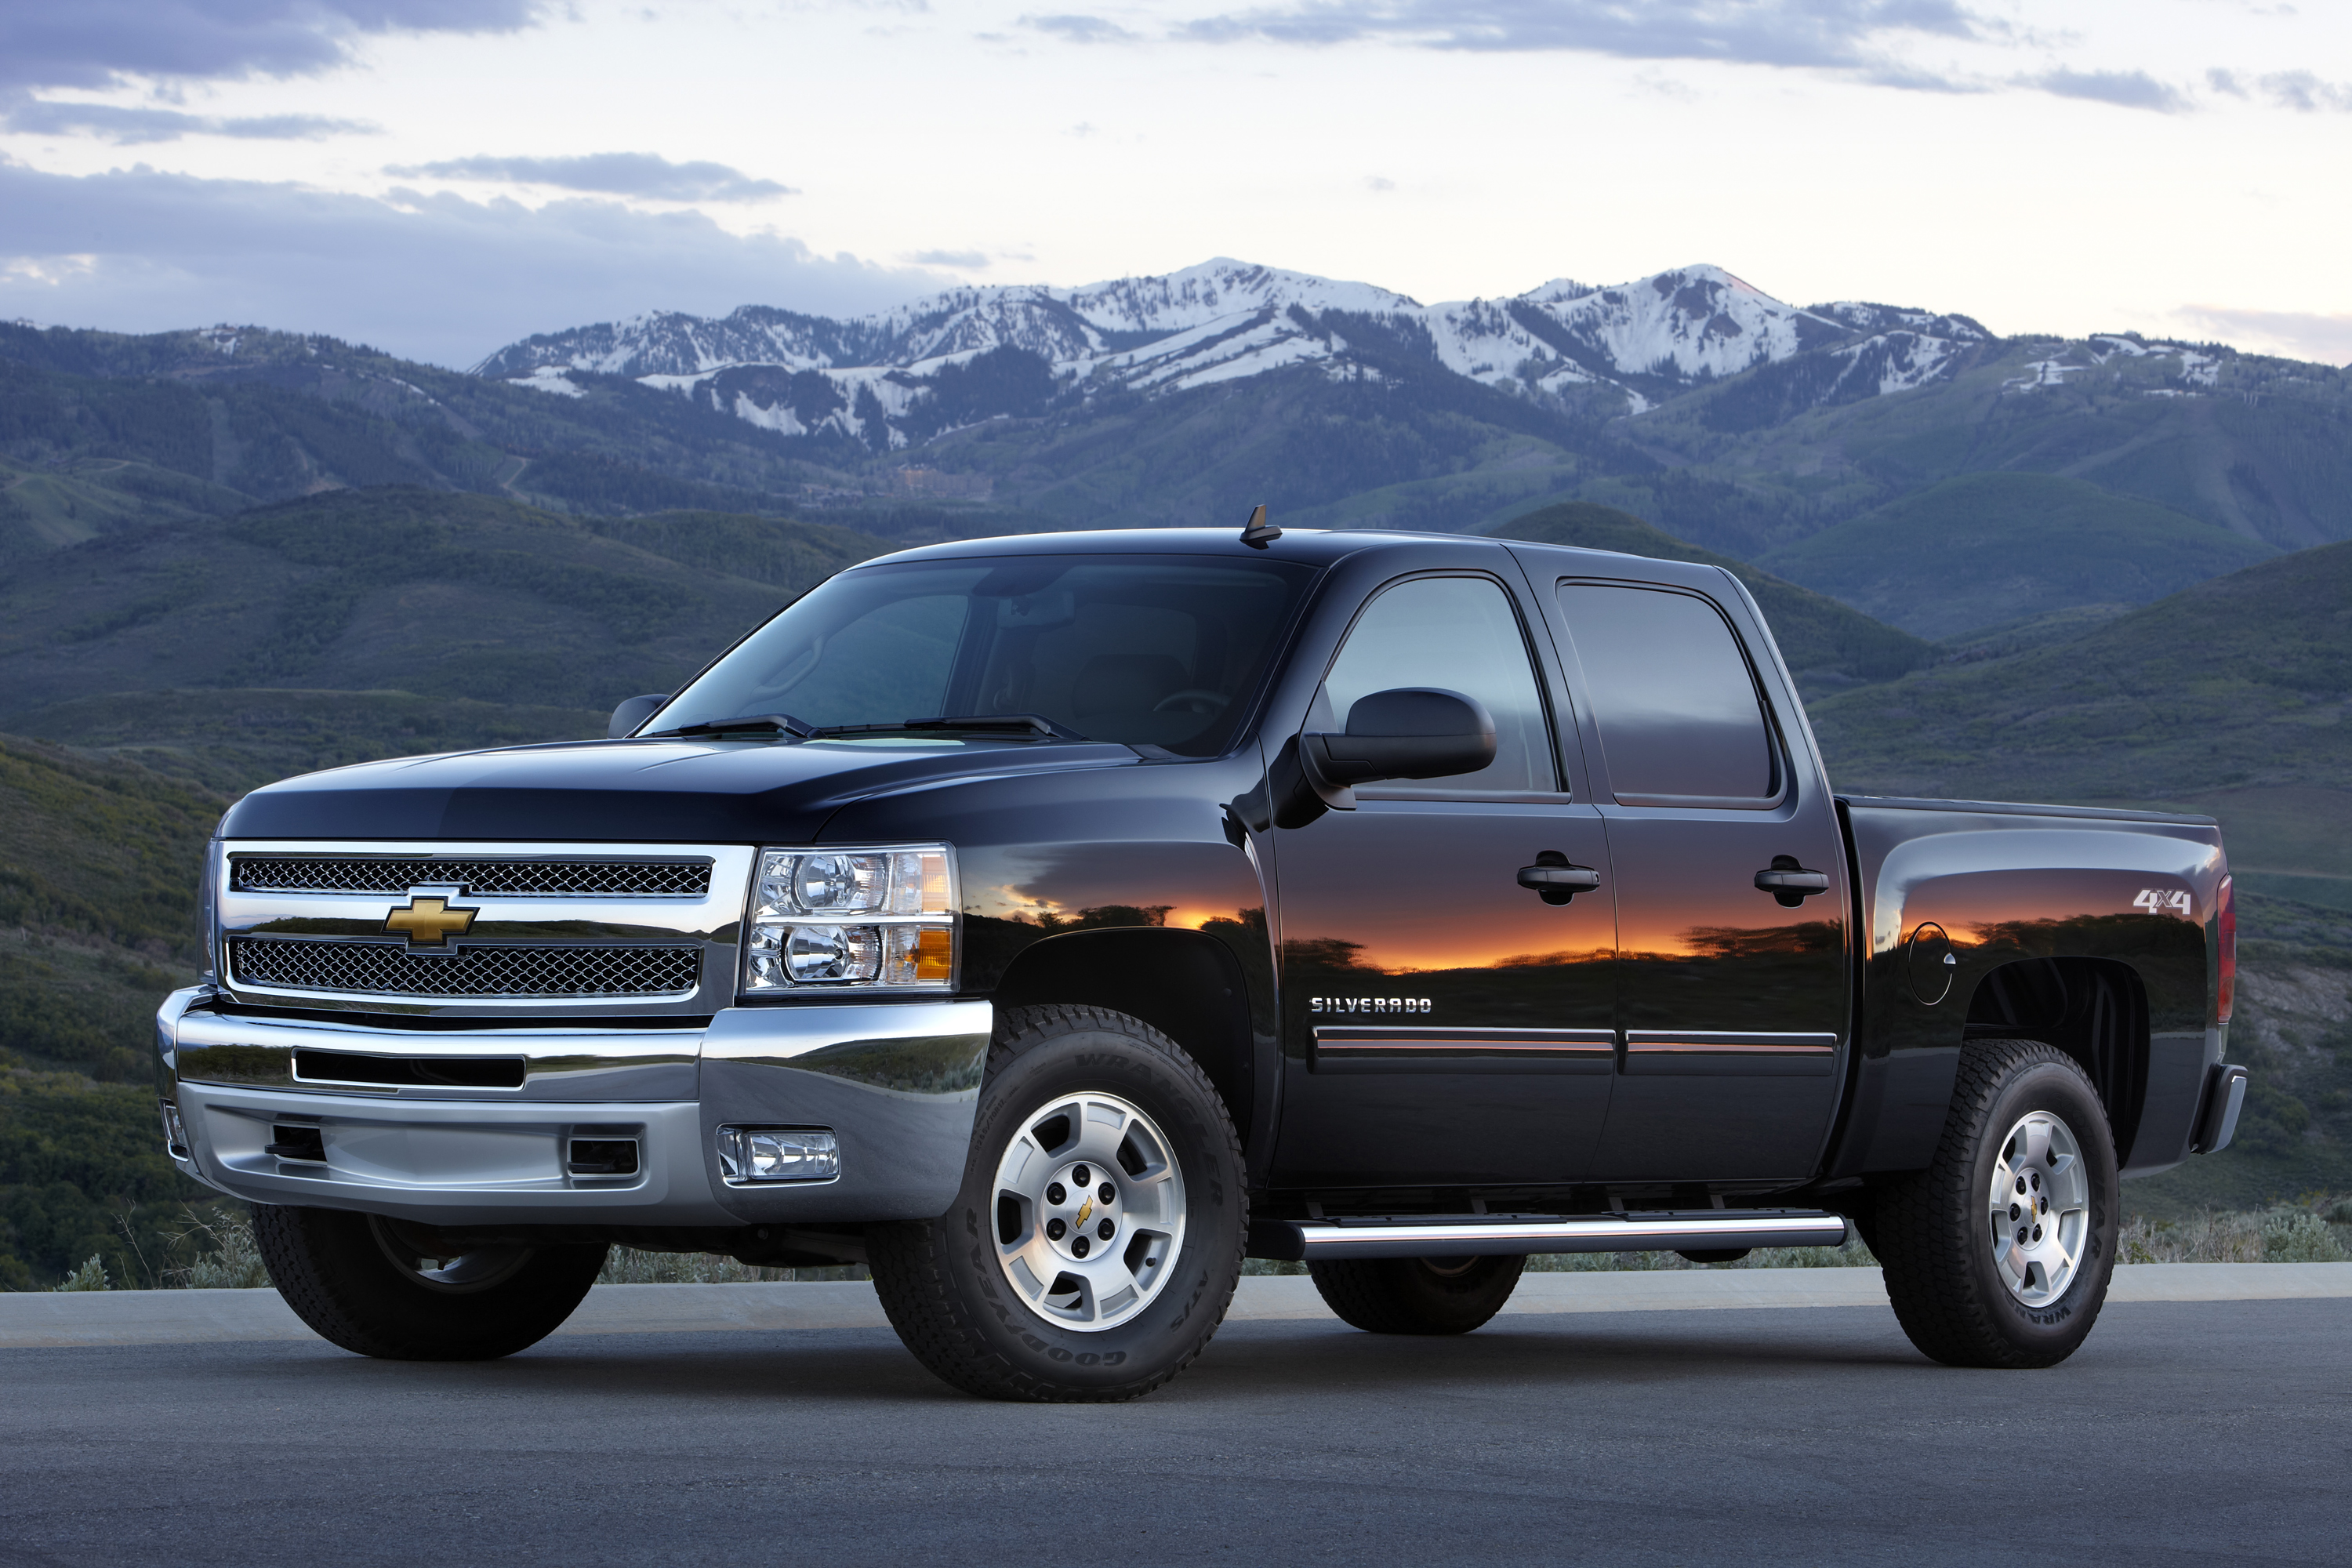 chevrolet silverado wallpaper #1